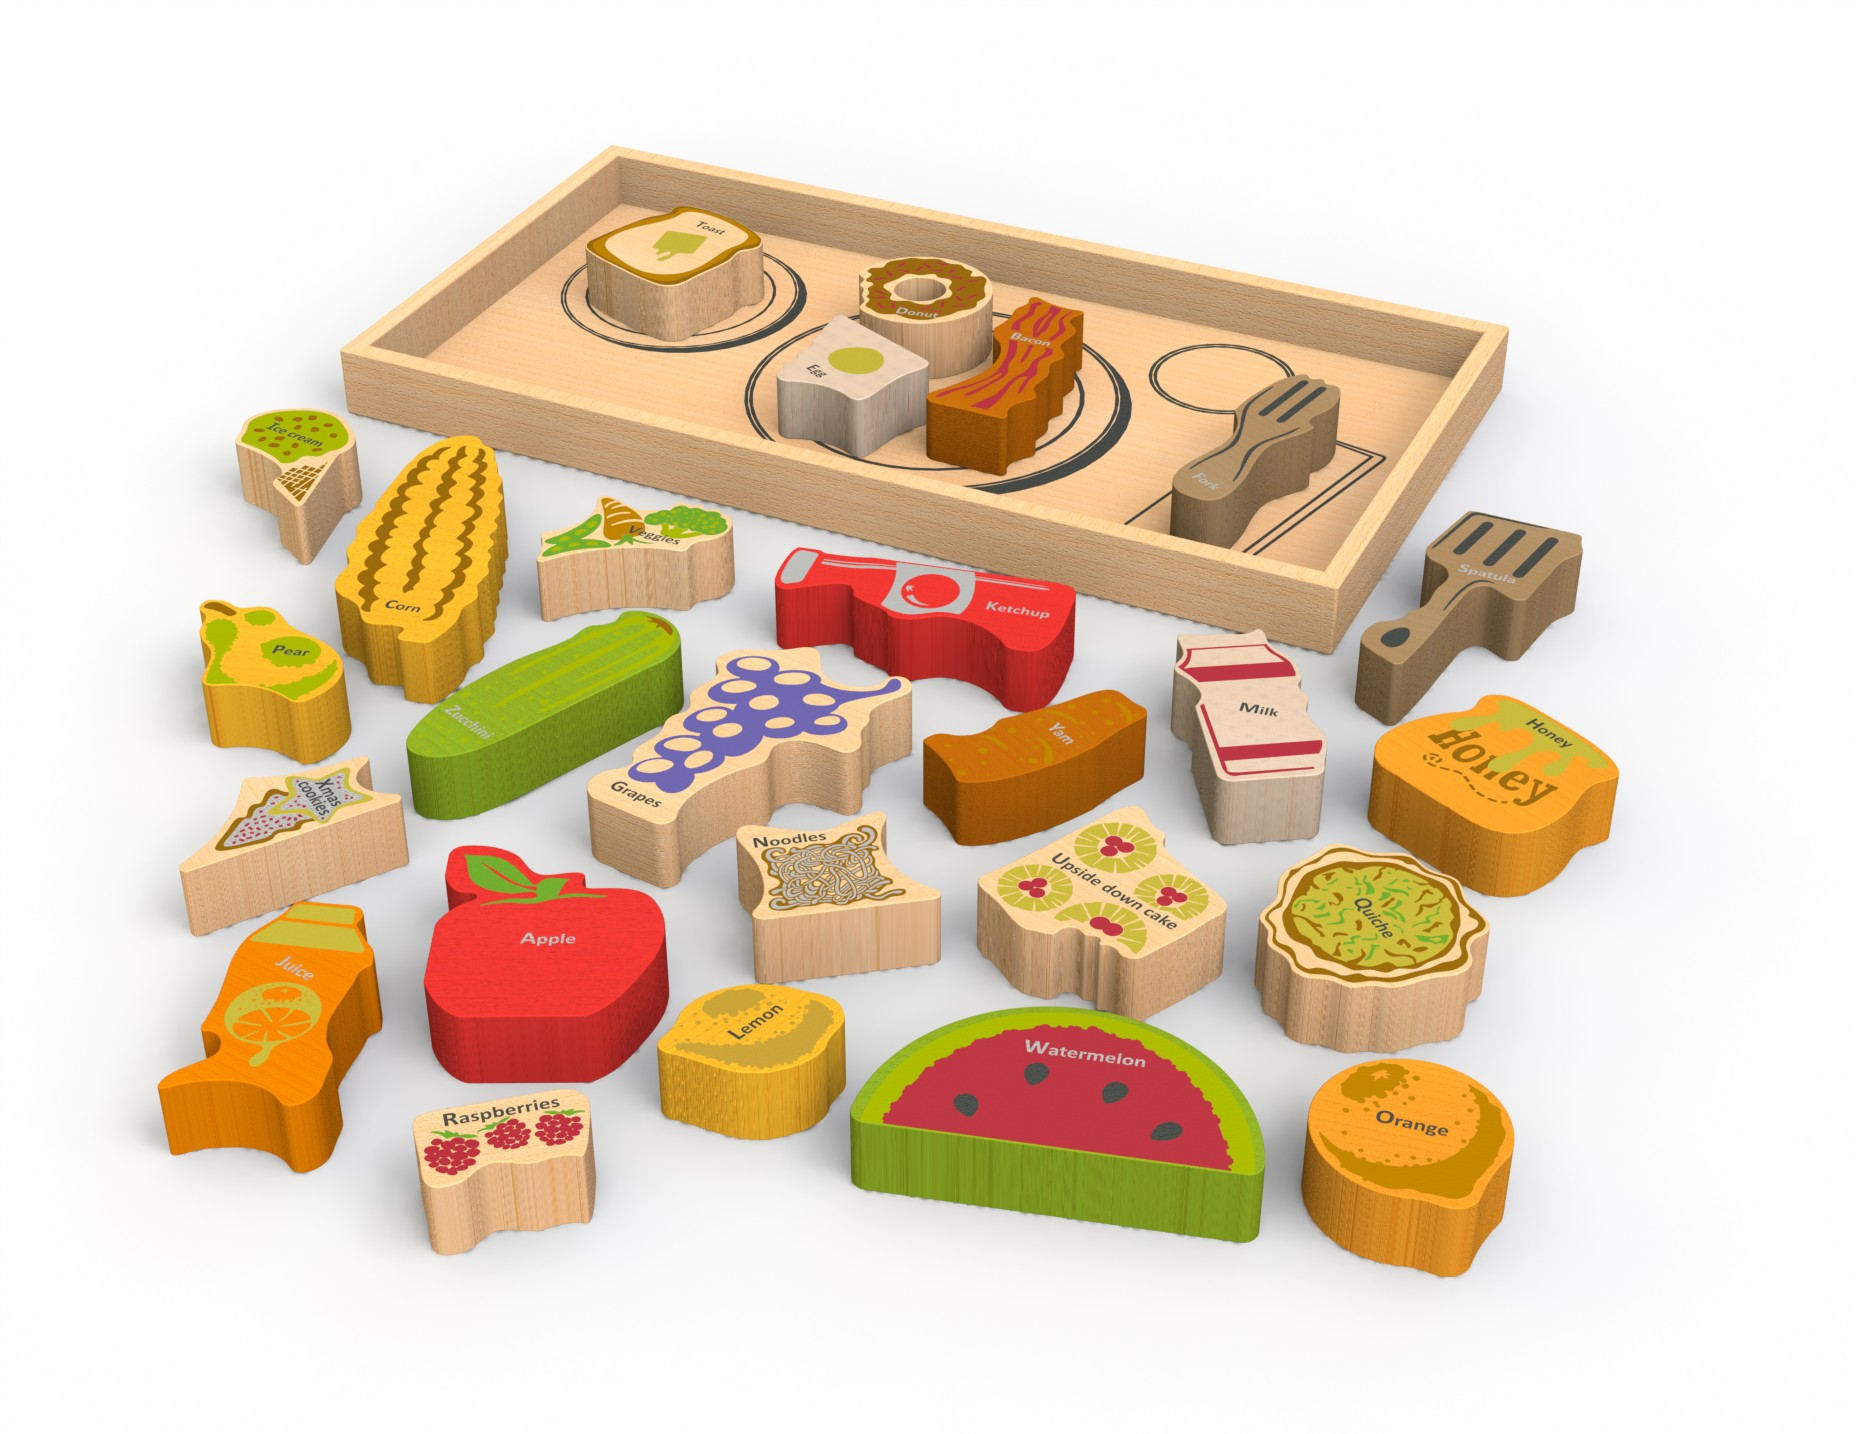 Toys beautiful and affordable all wood play kitchen sets inhabitots - Beginagain Debuts A Fresh Crop Of Fantastic Green Toys For Tots Inhabitots